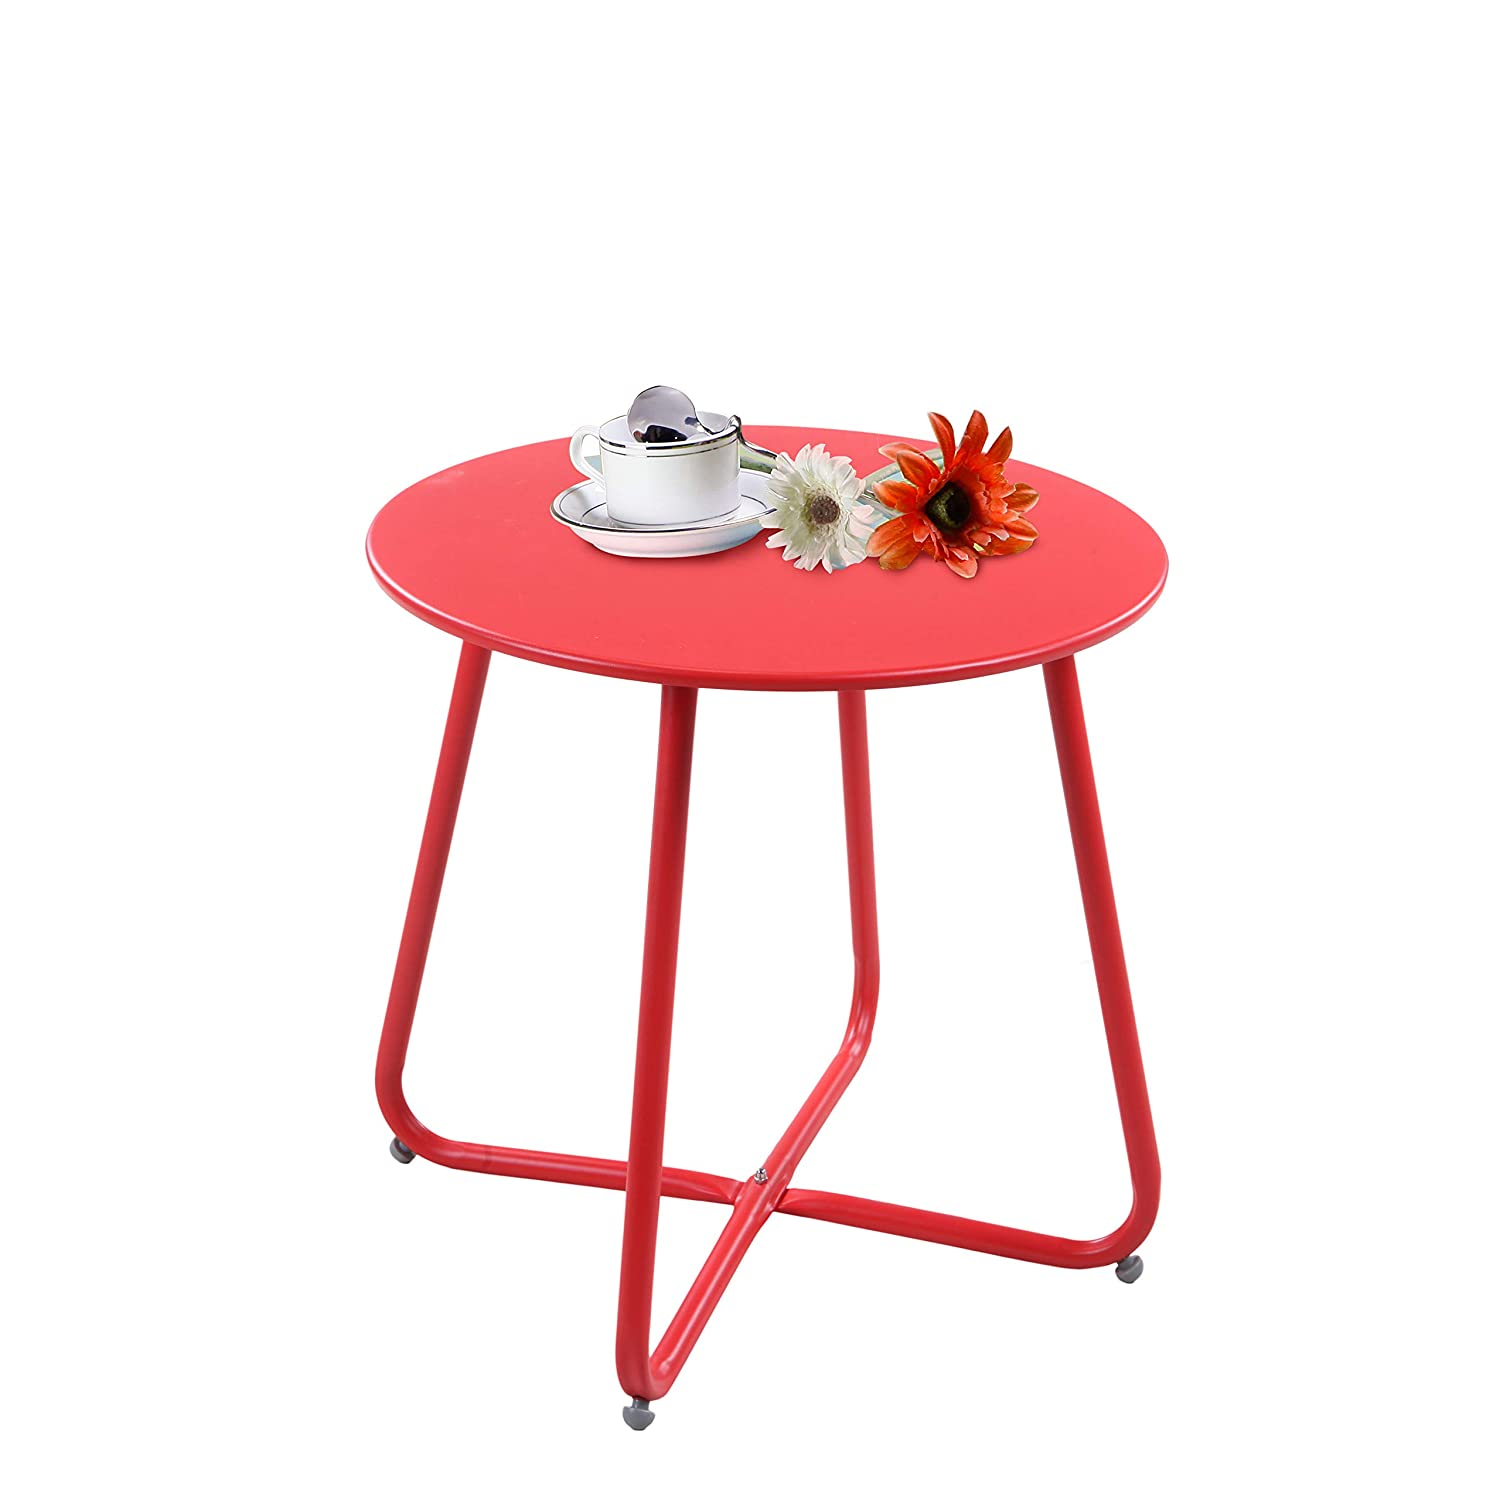 Grand patio Steel Patio Coffee Table, Weather Resistant Outdoor Side Table, Small Round End Table, Red